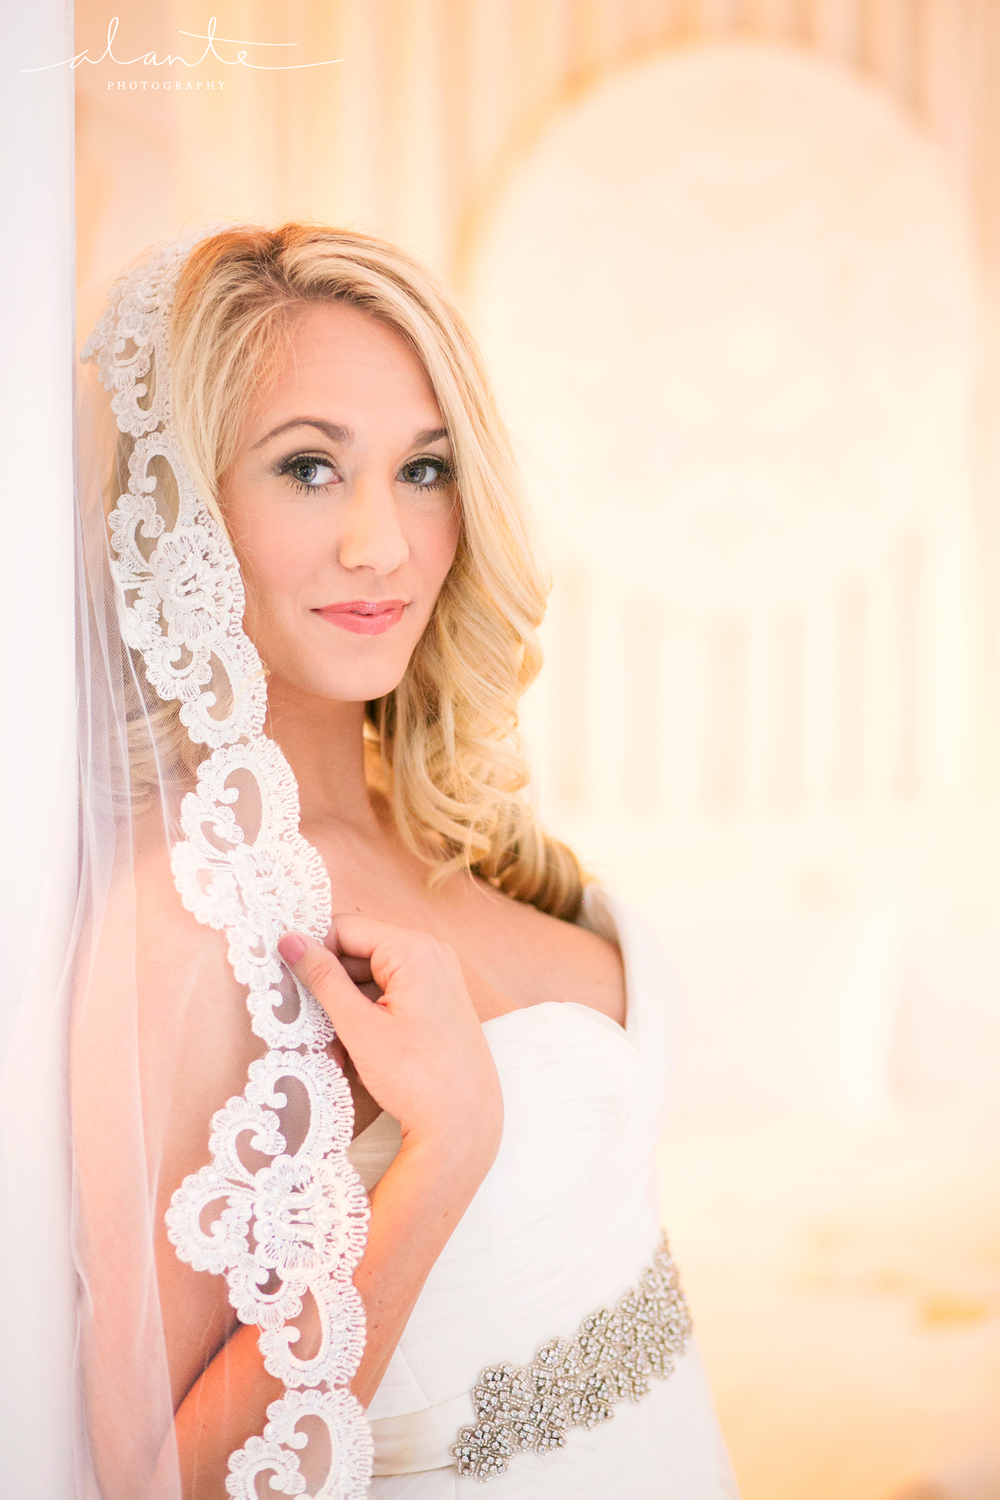 Palms Springs Wedding | Palms Springs Makeup Artist | Palms Springs Wedding Hair Stylist | Riviera Hotel |